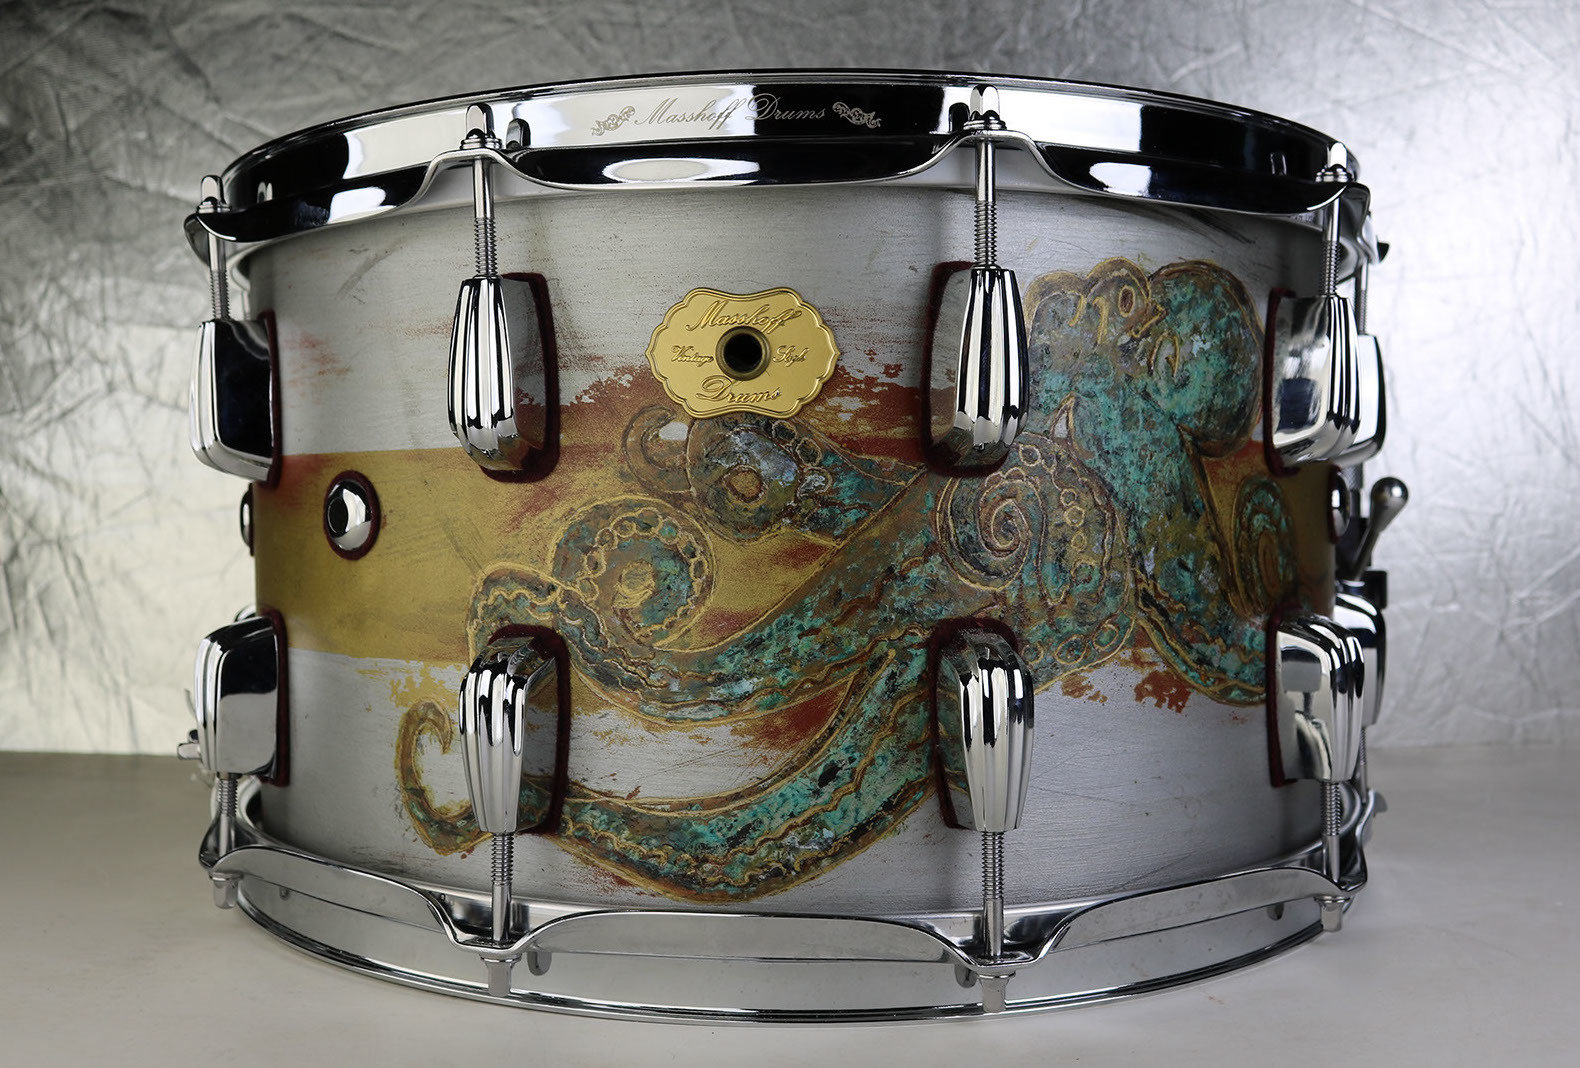 Personalized Snares [configurator]